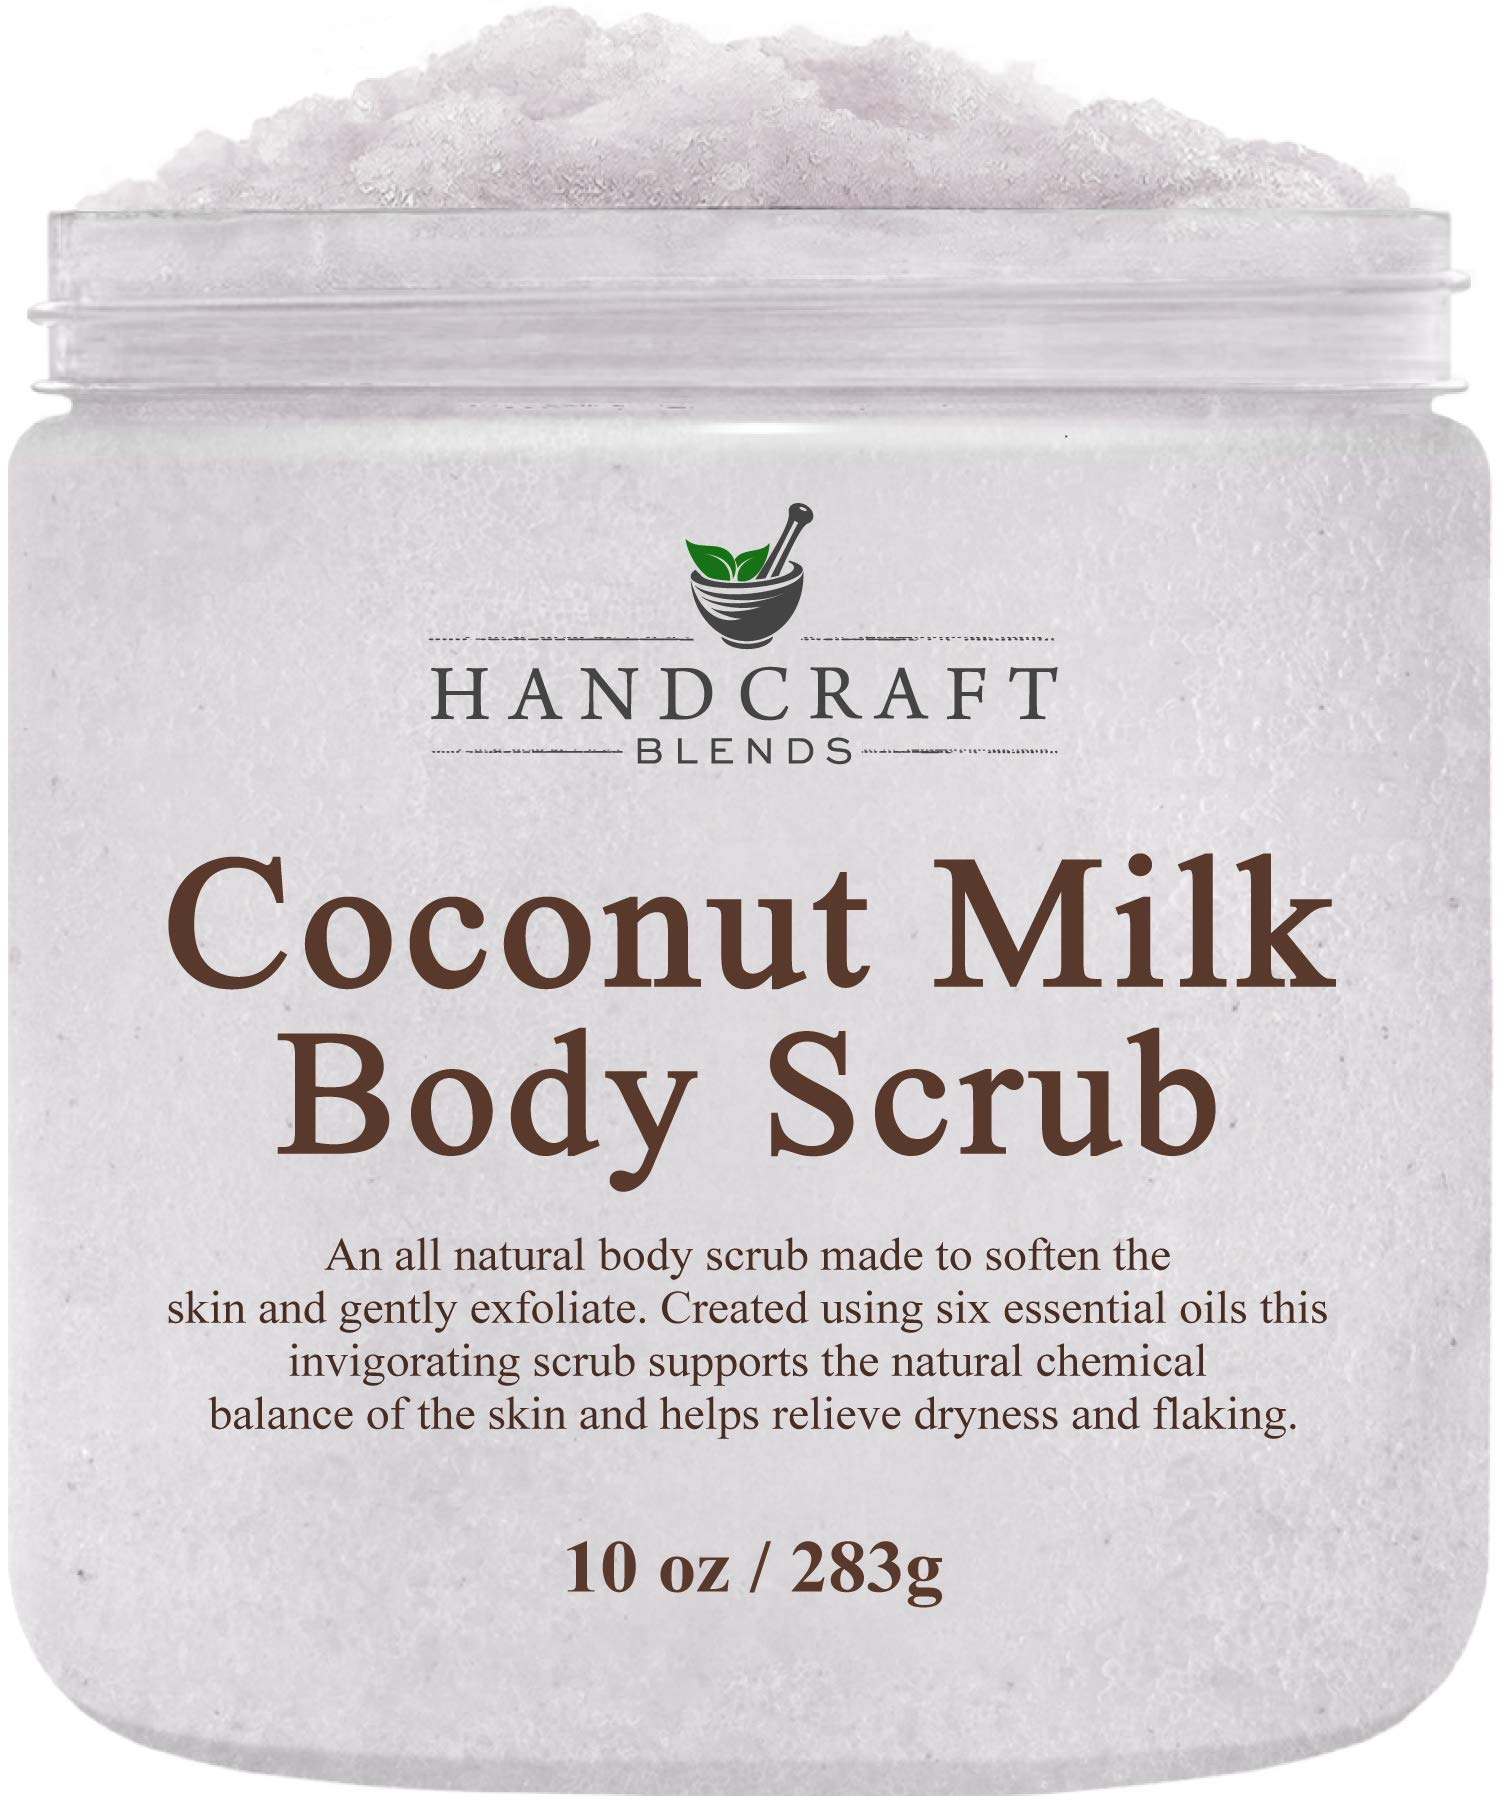 Handcraft Coconut Milk Body Scrub - All Natural - Made With Dead Sea Salt and Essential Oils for Body, Cellulite, Stretch Marks, and Varicose Veins - 10 oz by Handcraft Blends